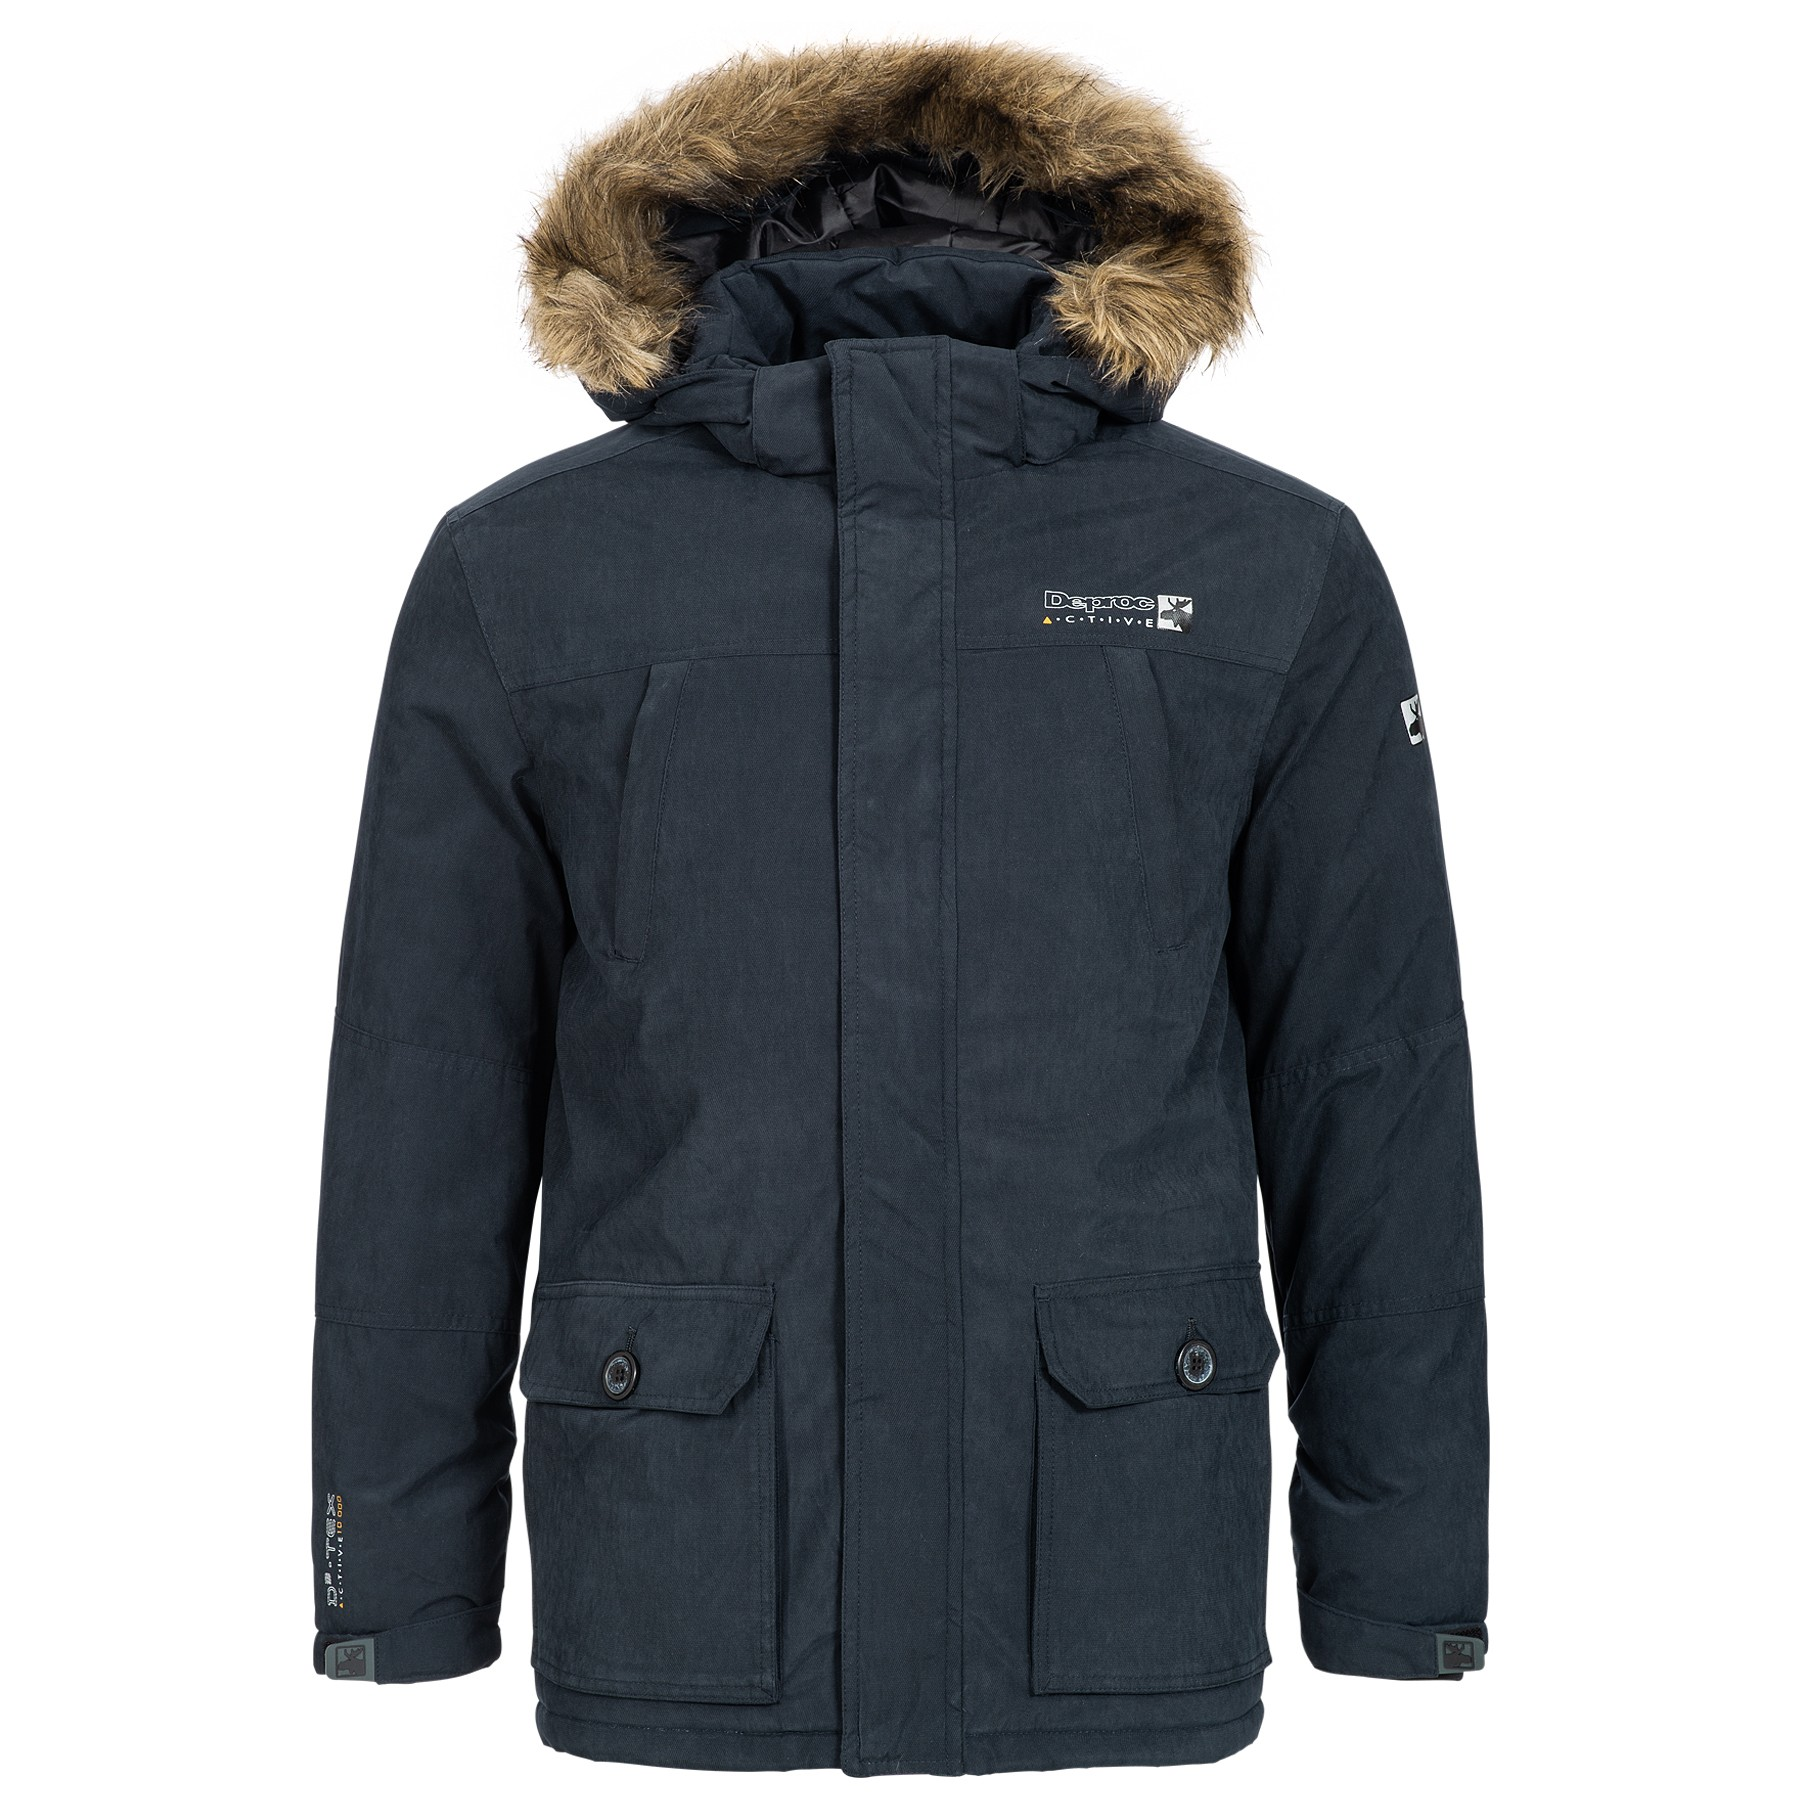 WINTERJACKE & OUTDOORJACKE HERREN DEPROC ELLIOT MEN - navy